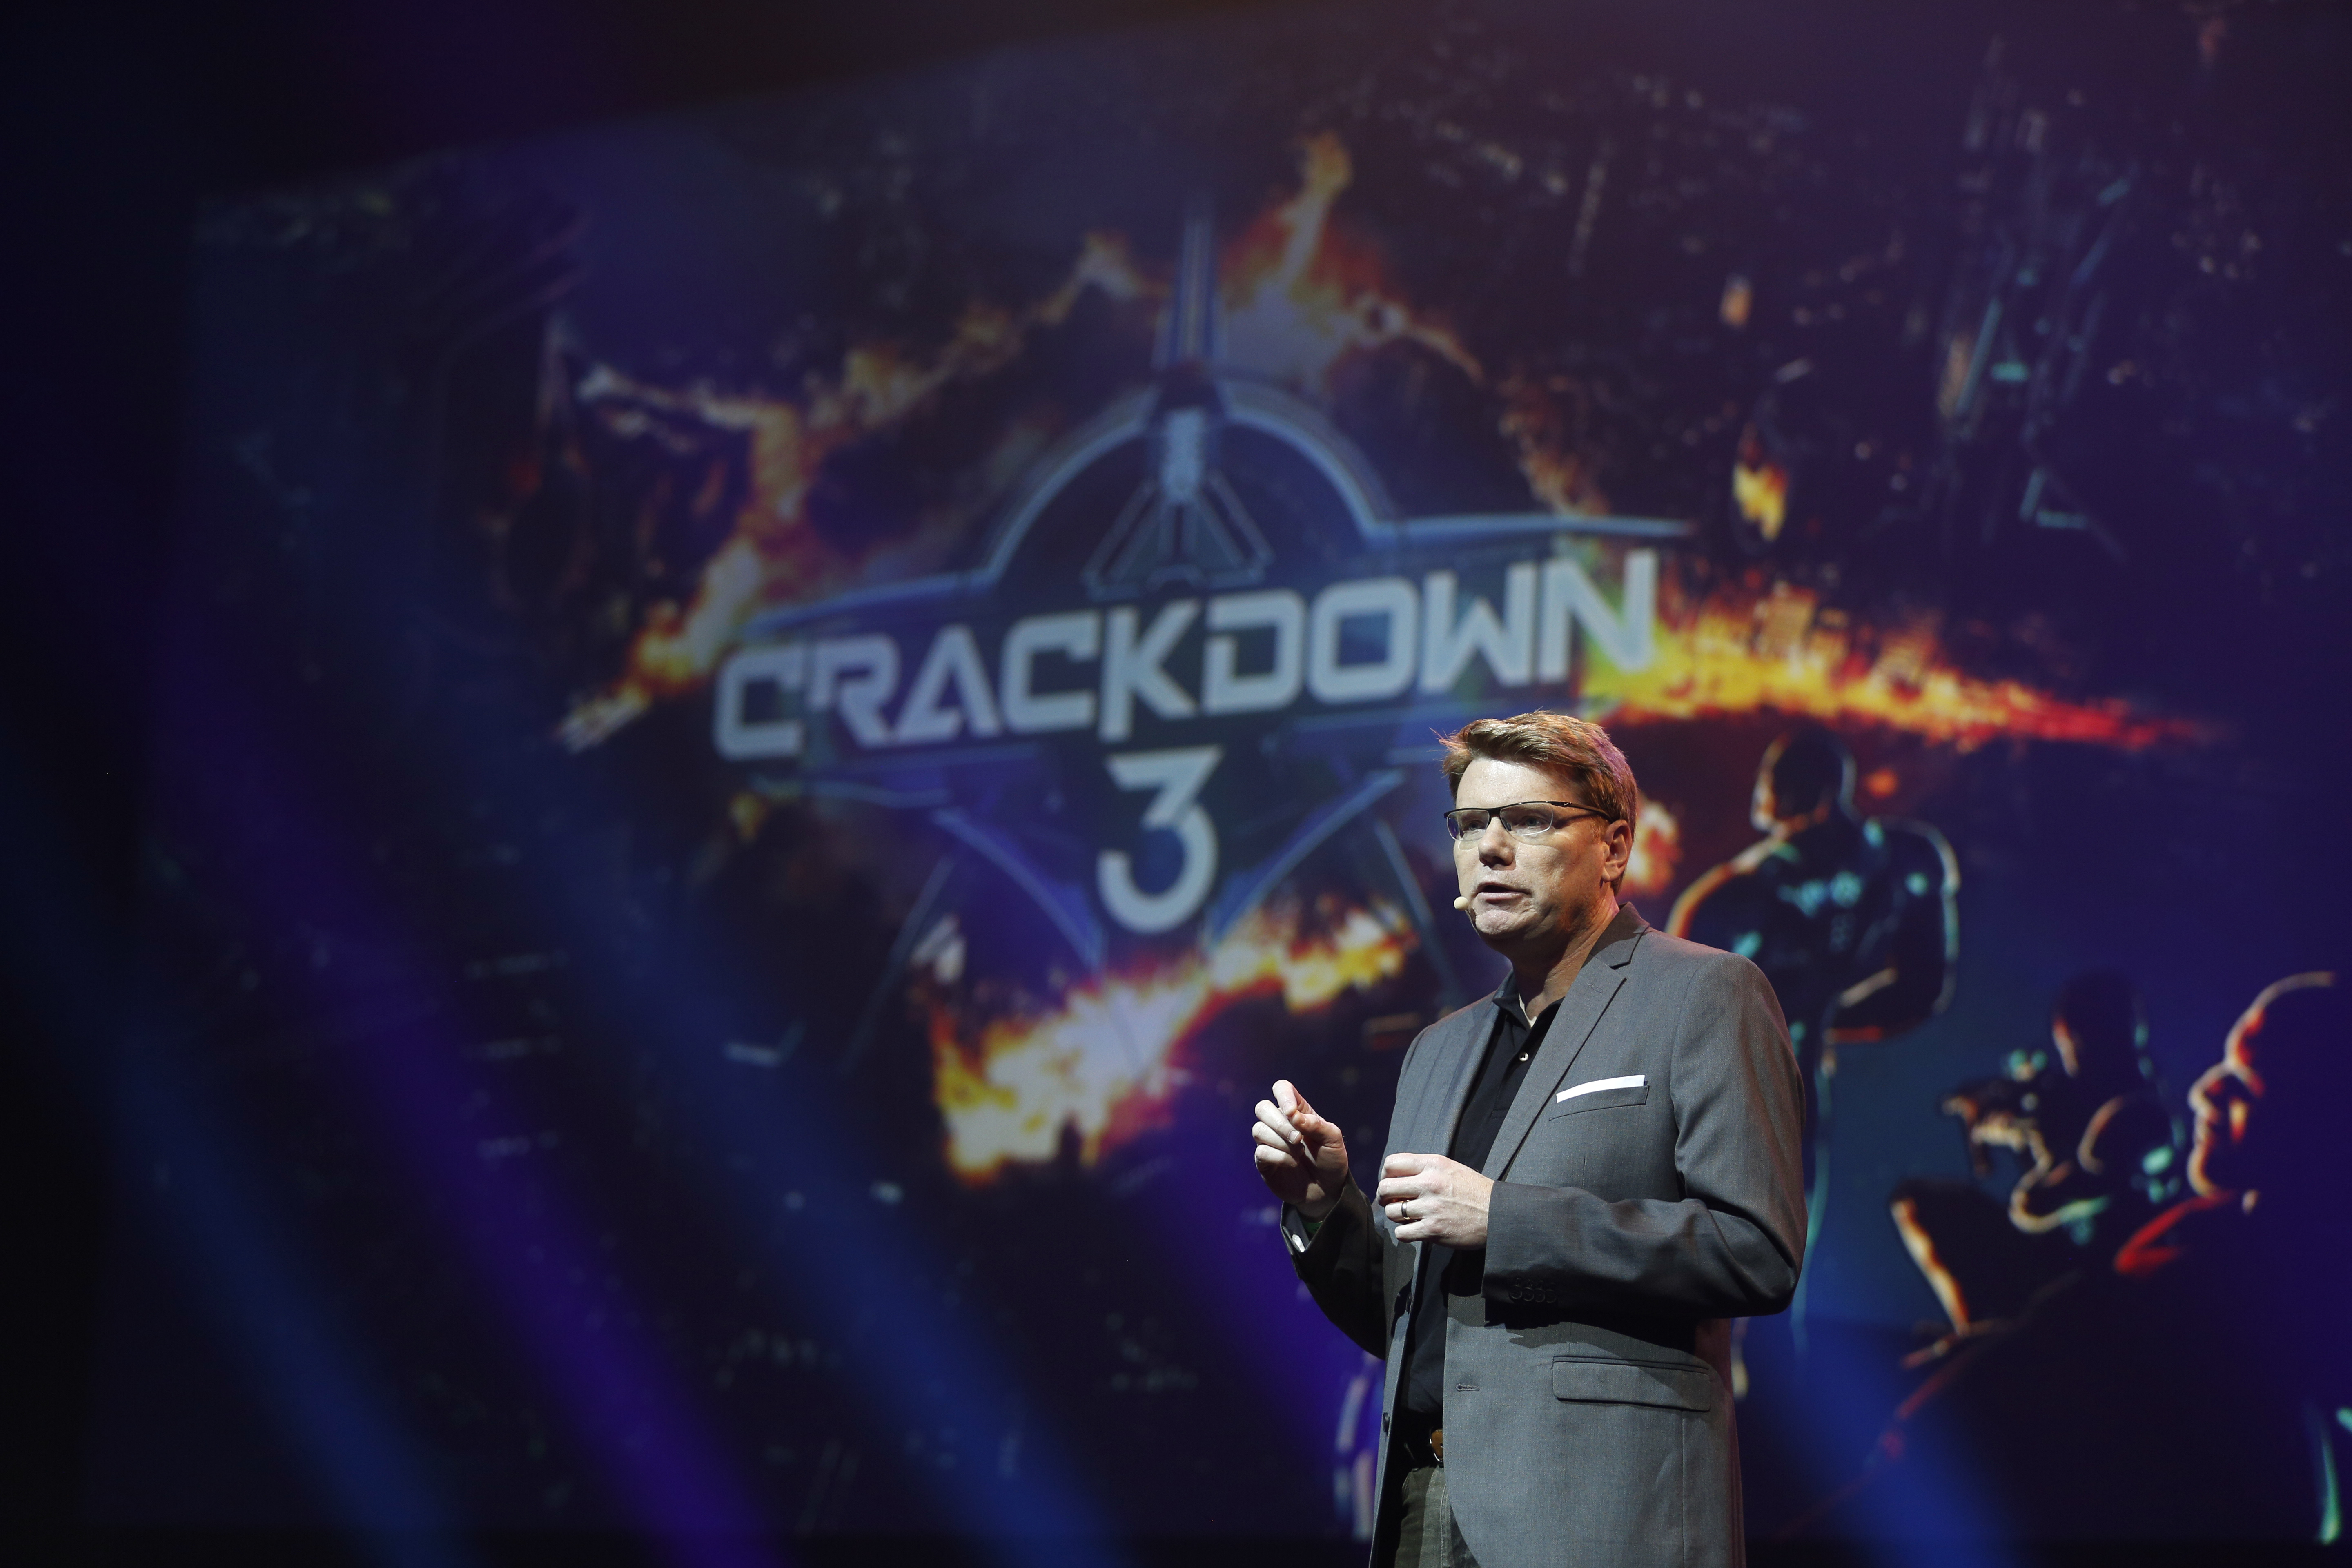 Crackdown 3 (finally) proves why Microsoft put Xbox One's head in the cloud